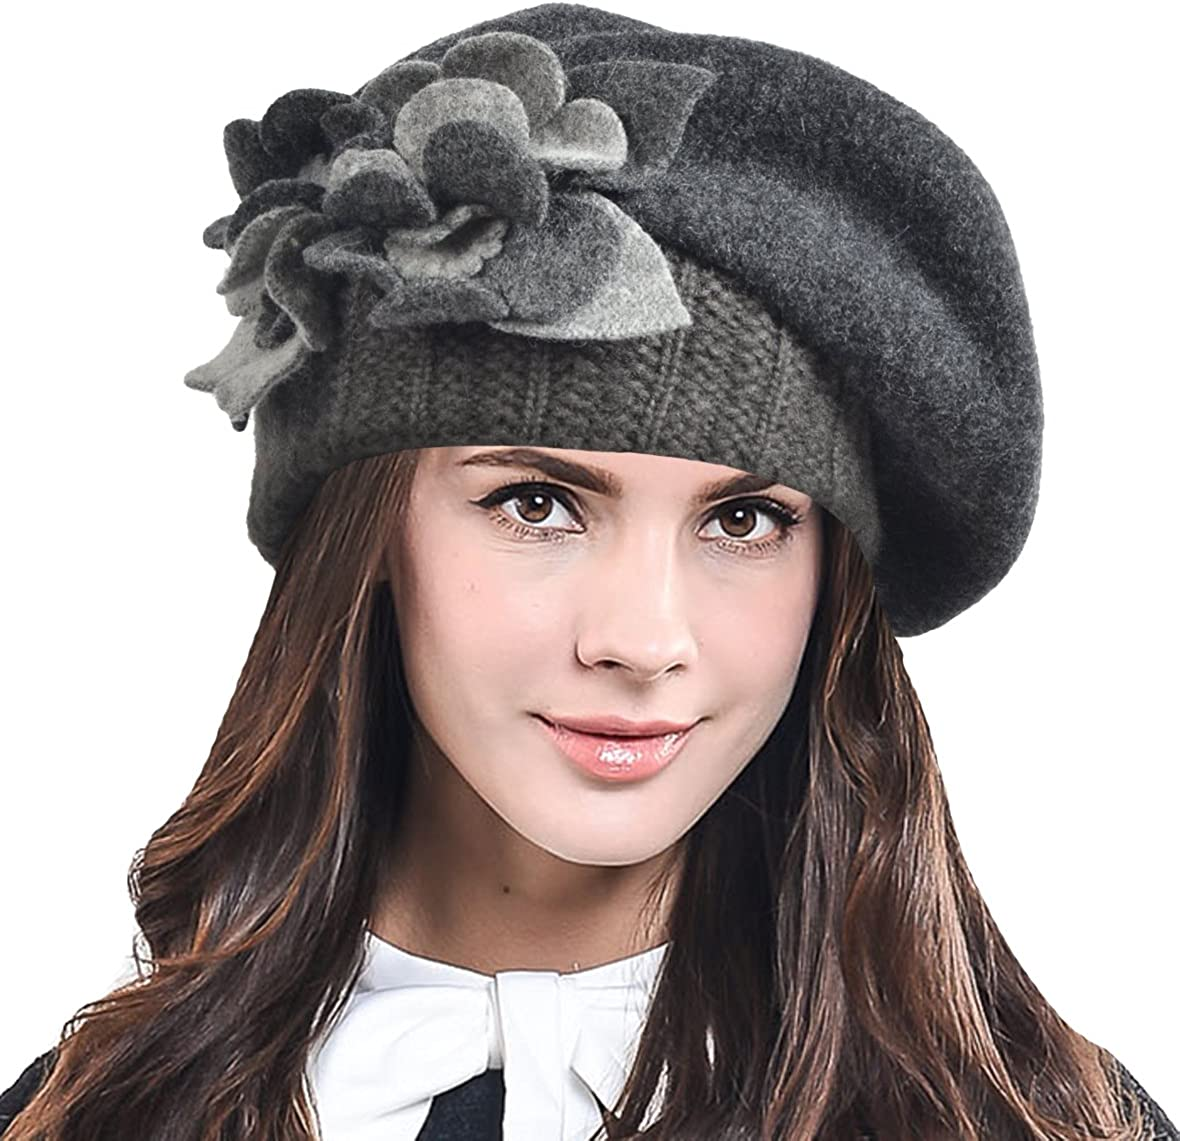 Lady French Beret 100% Wool Beret Chic Beanie Winter Hat HY023